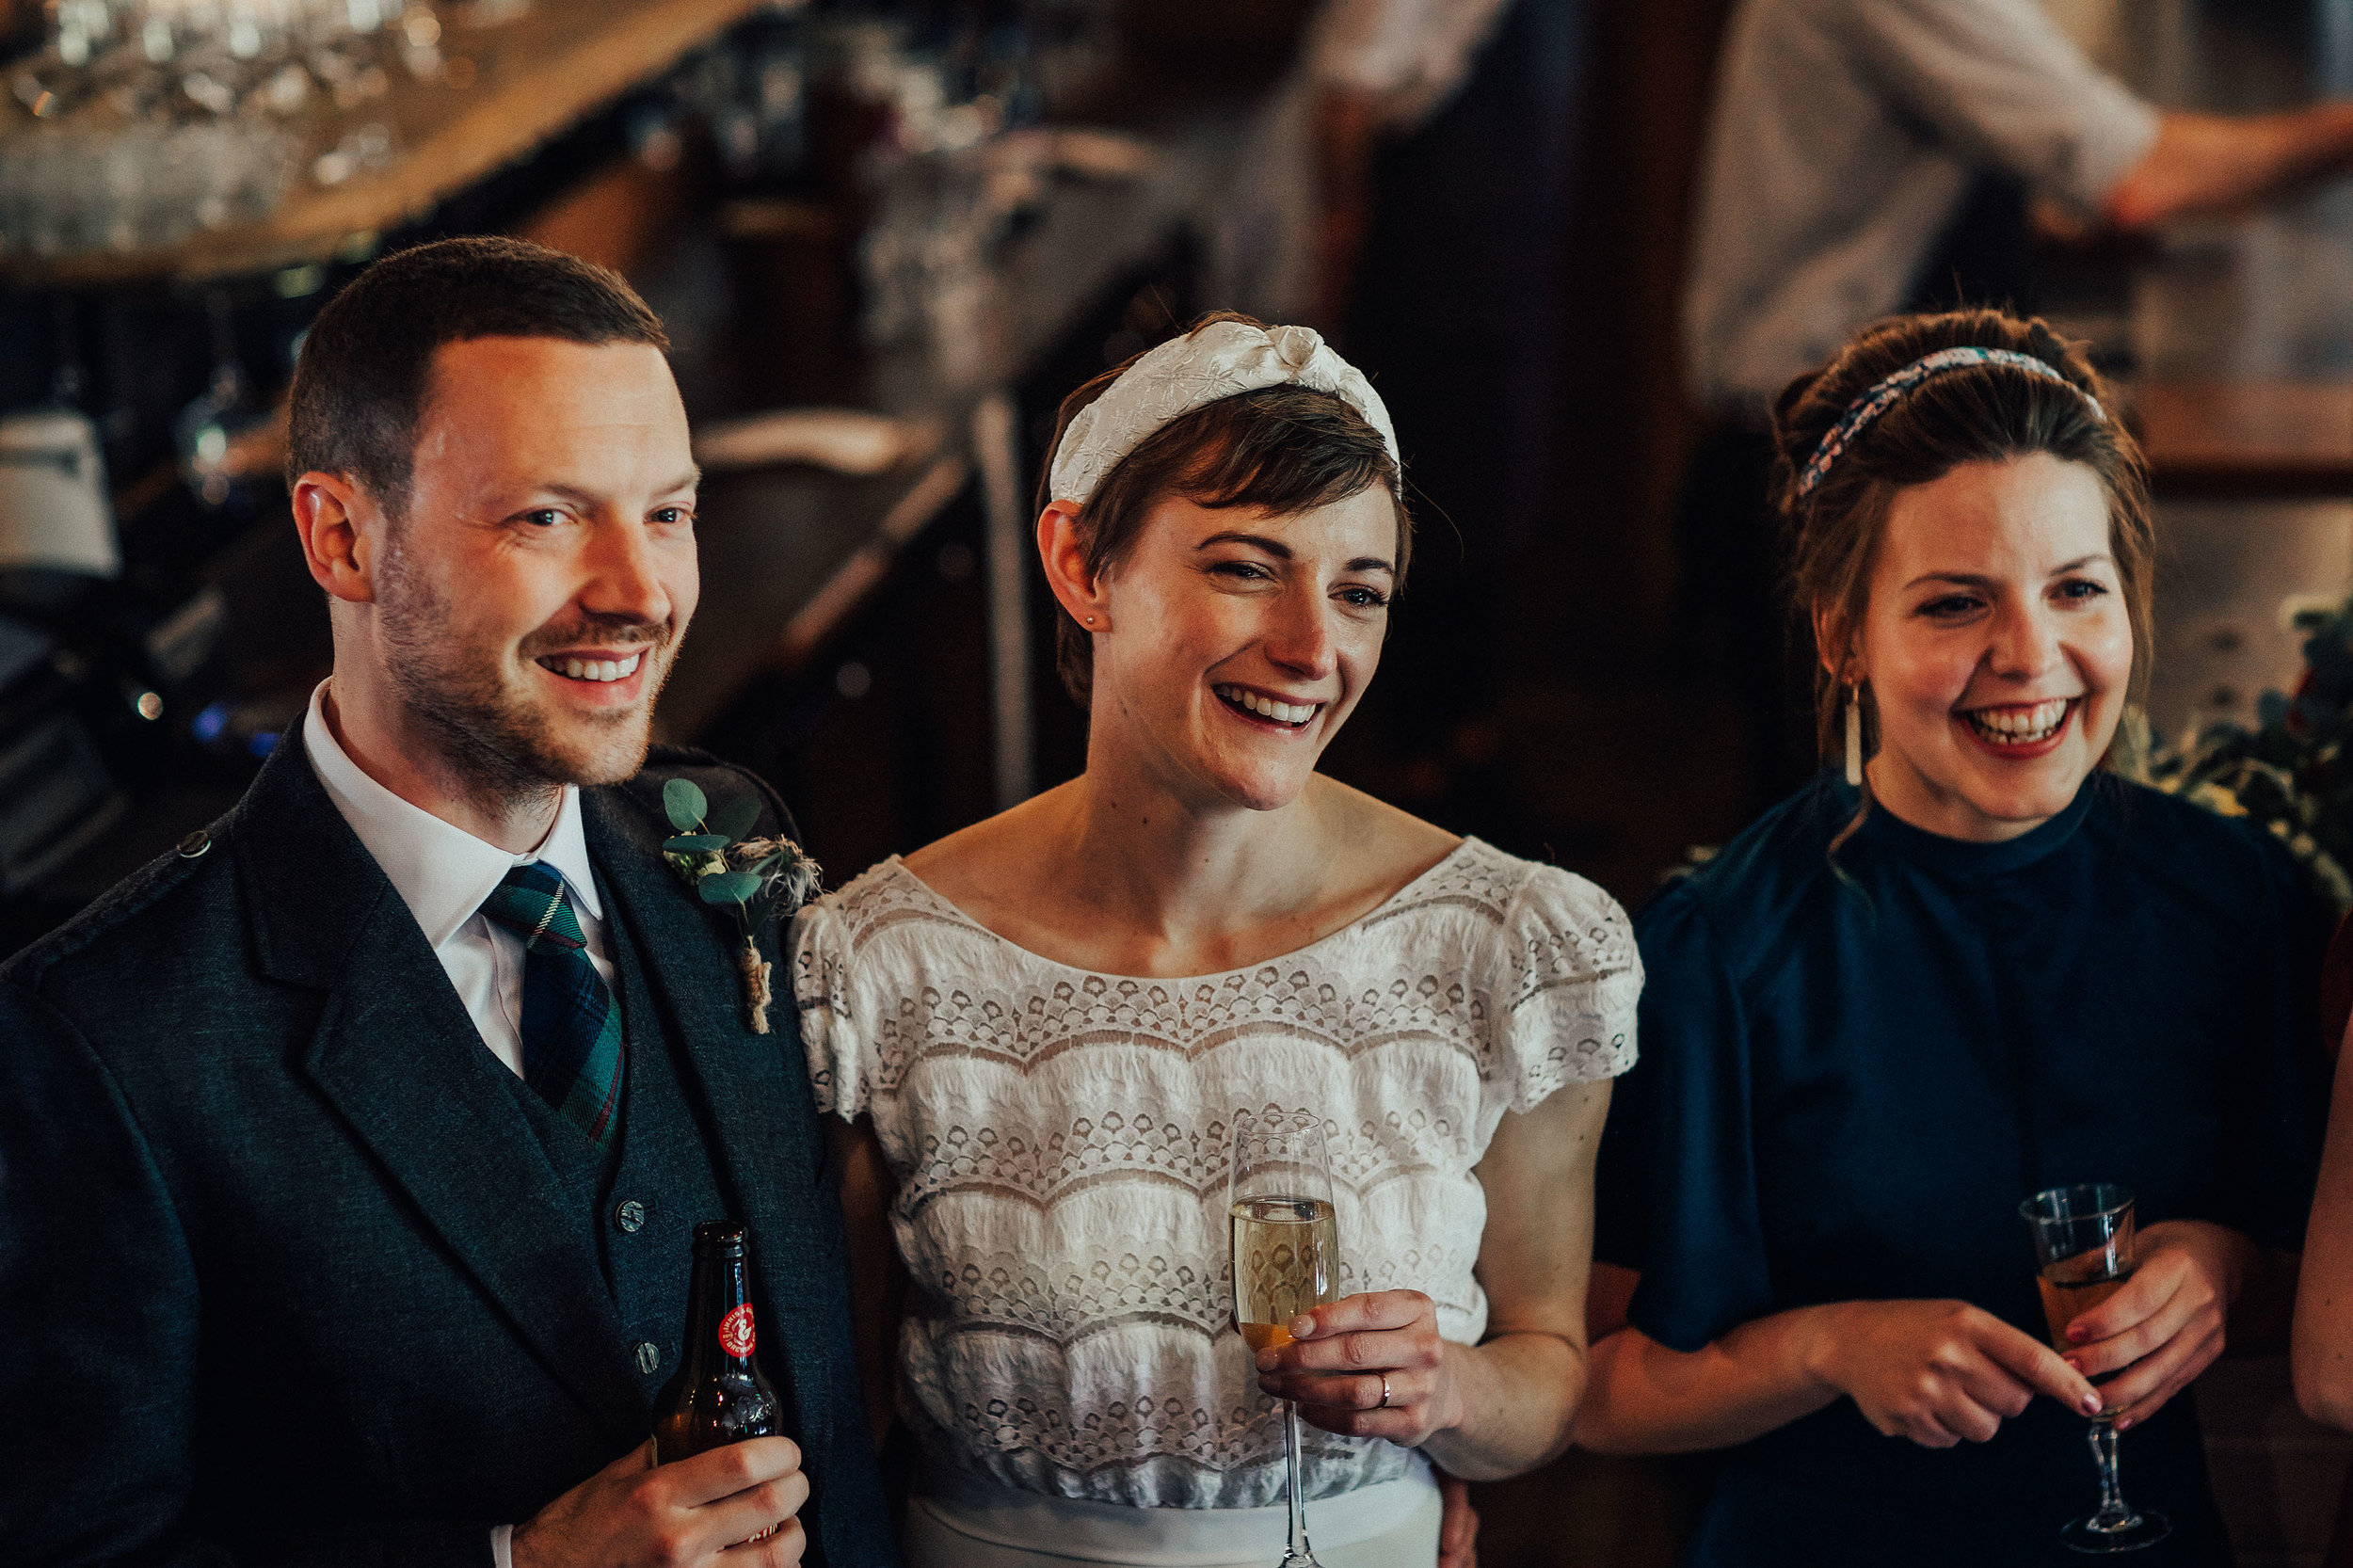 TIMBERYARD_EDINBURGH_WEDDING_PJ_PHILLIPS_PHOTOGRAPHY_146.jpg